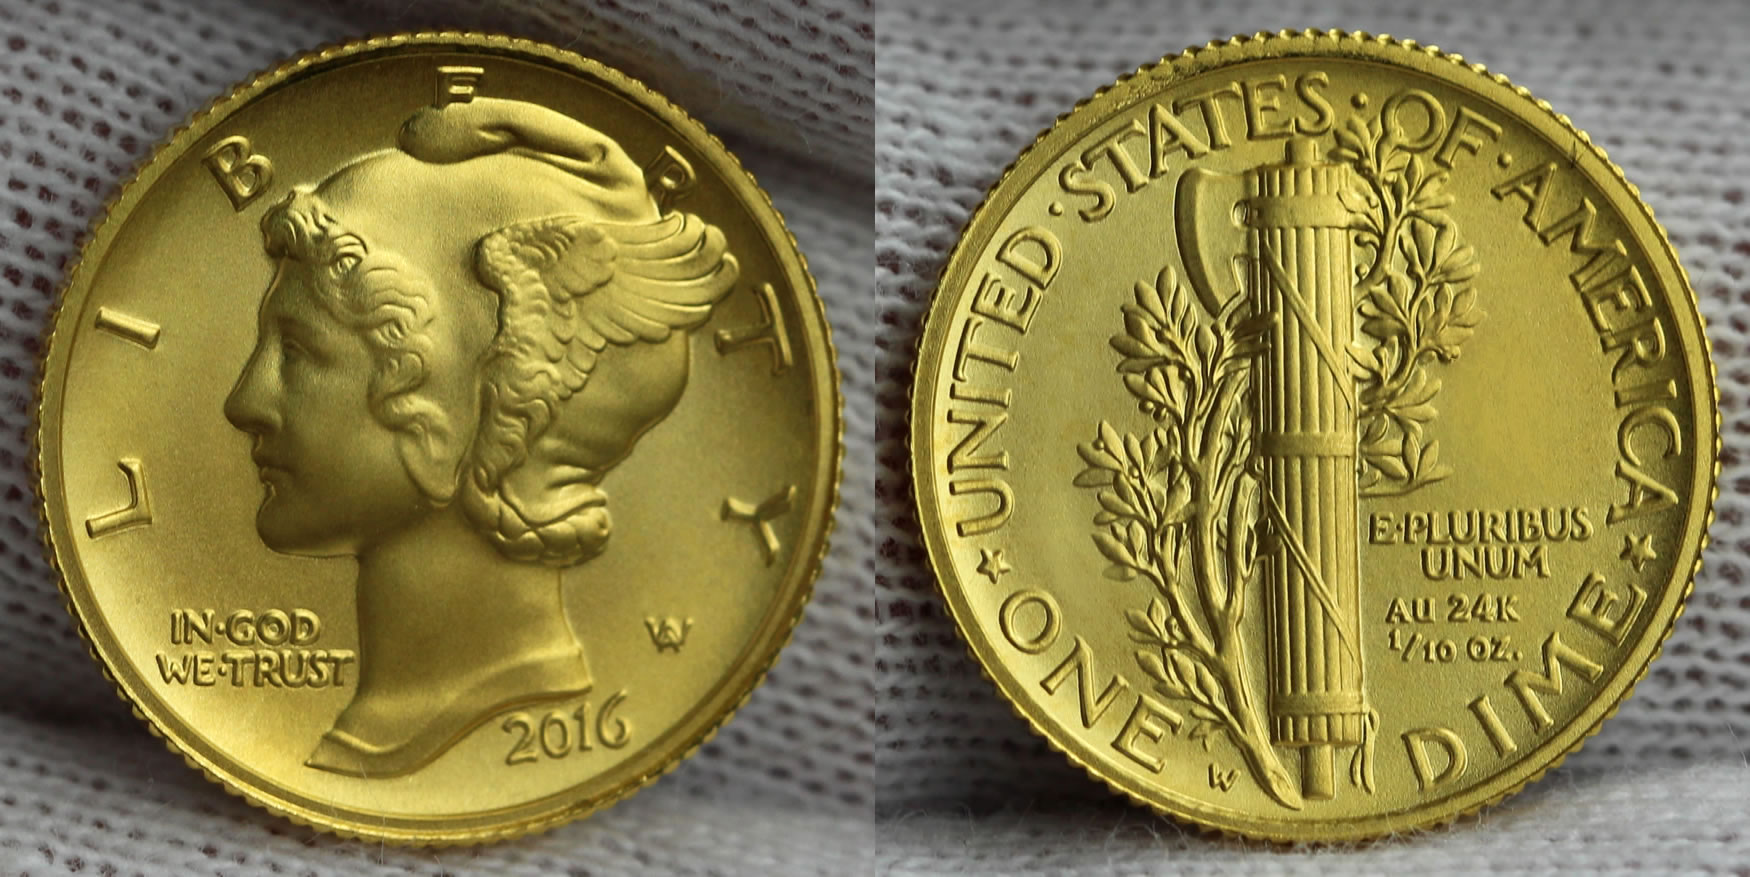 Mercury Dime Centennial Gold Coin Sells Out Coin News